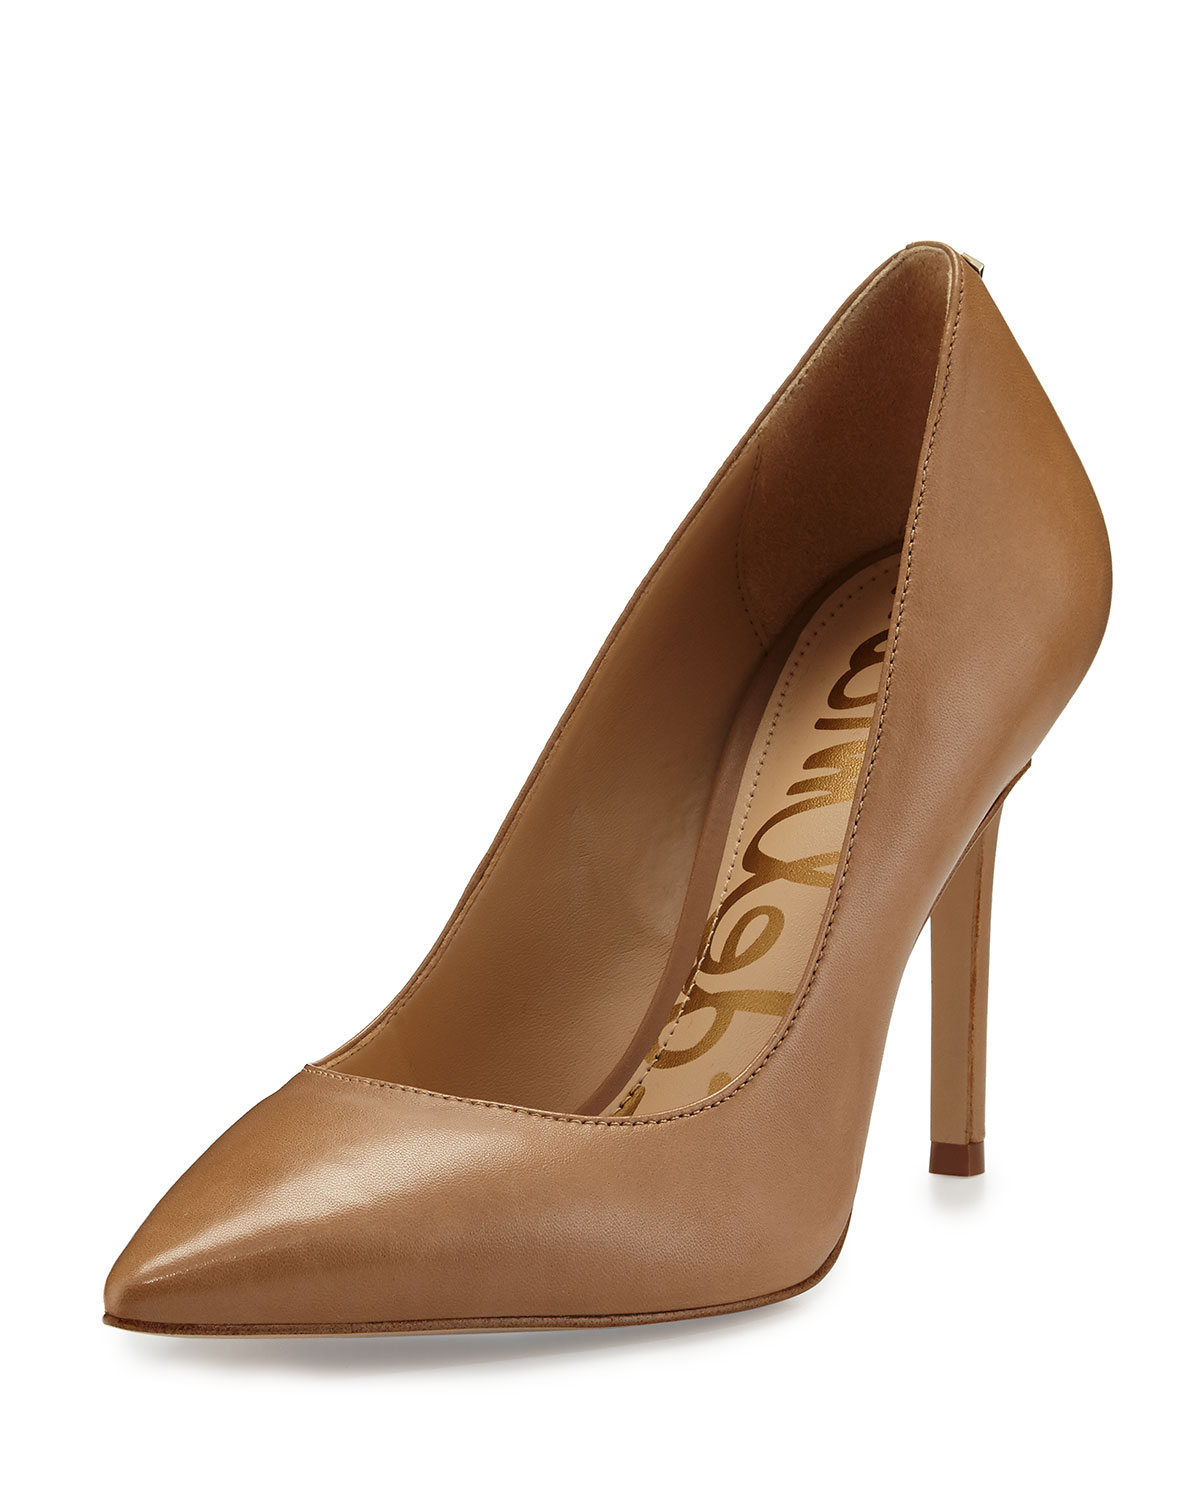 8a7717d5b Sam Edelman Hazel Pointed-Toe Leather Pump